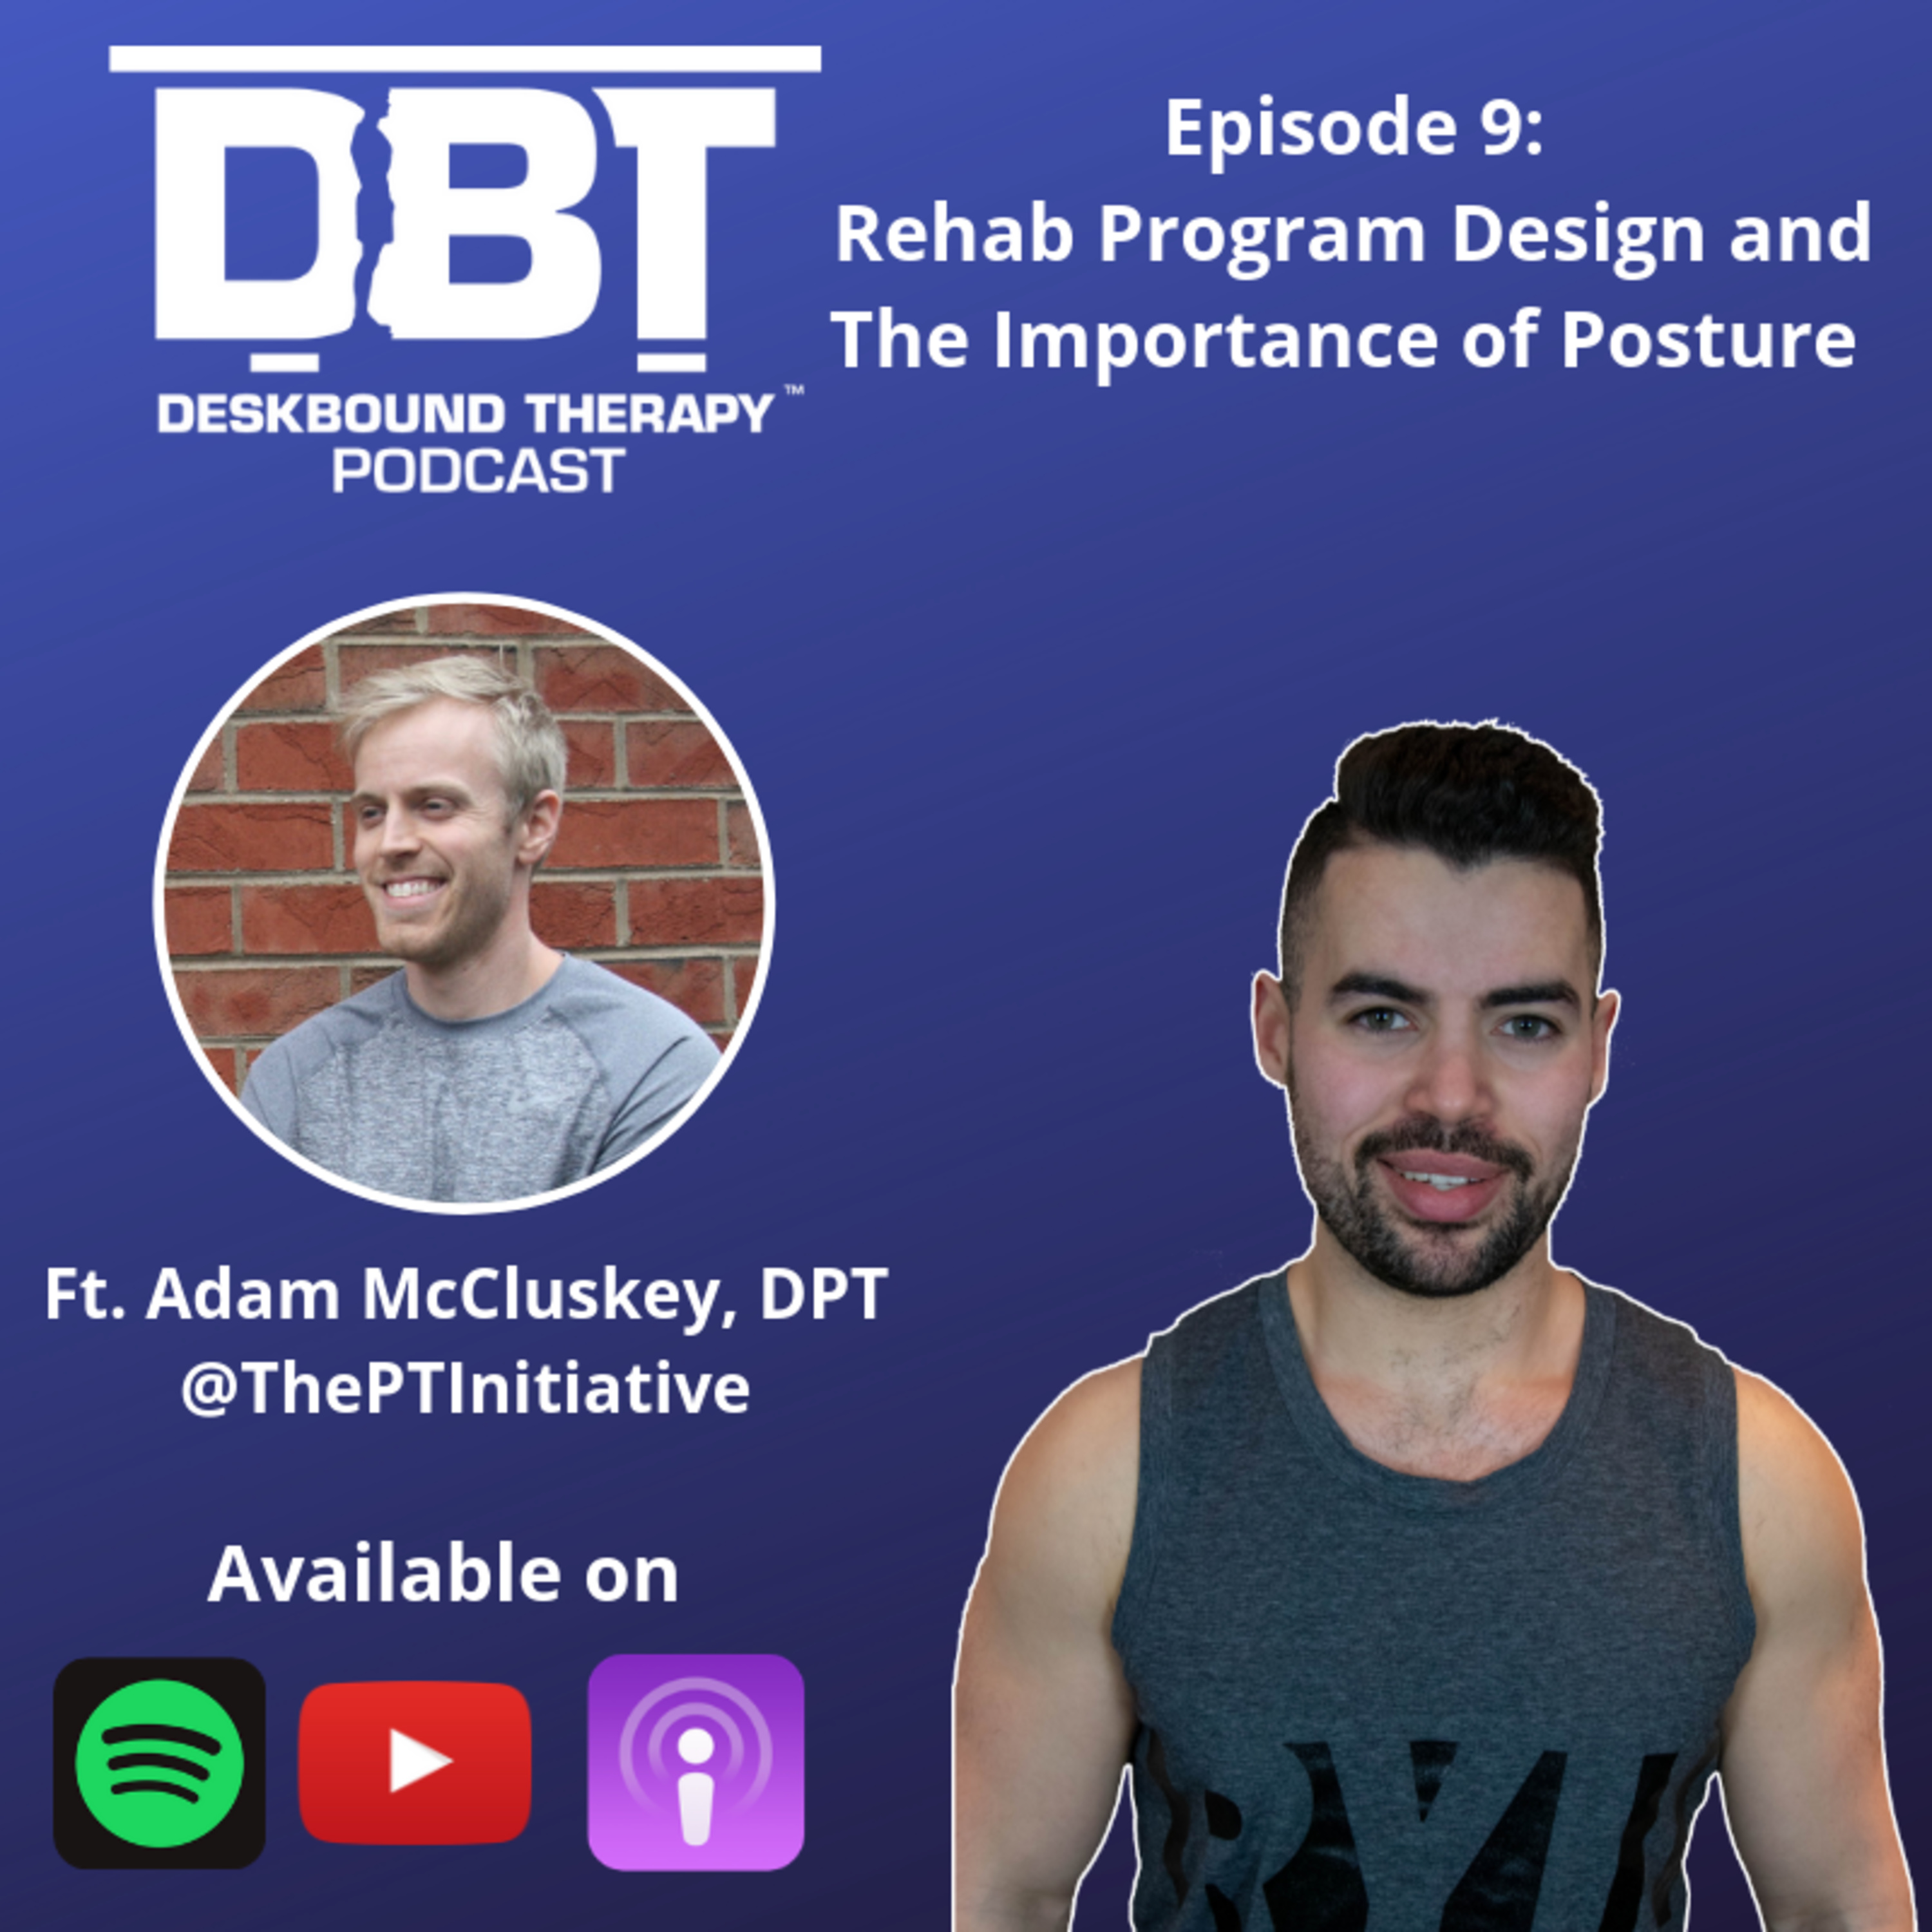 Episode 9 - Designing a Rehab Program and The Importance of Posture Ft. Adam McCluskey, DPT